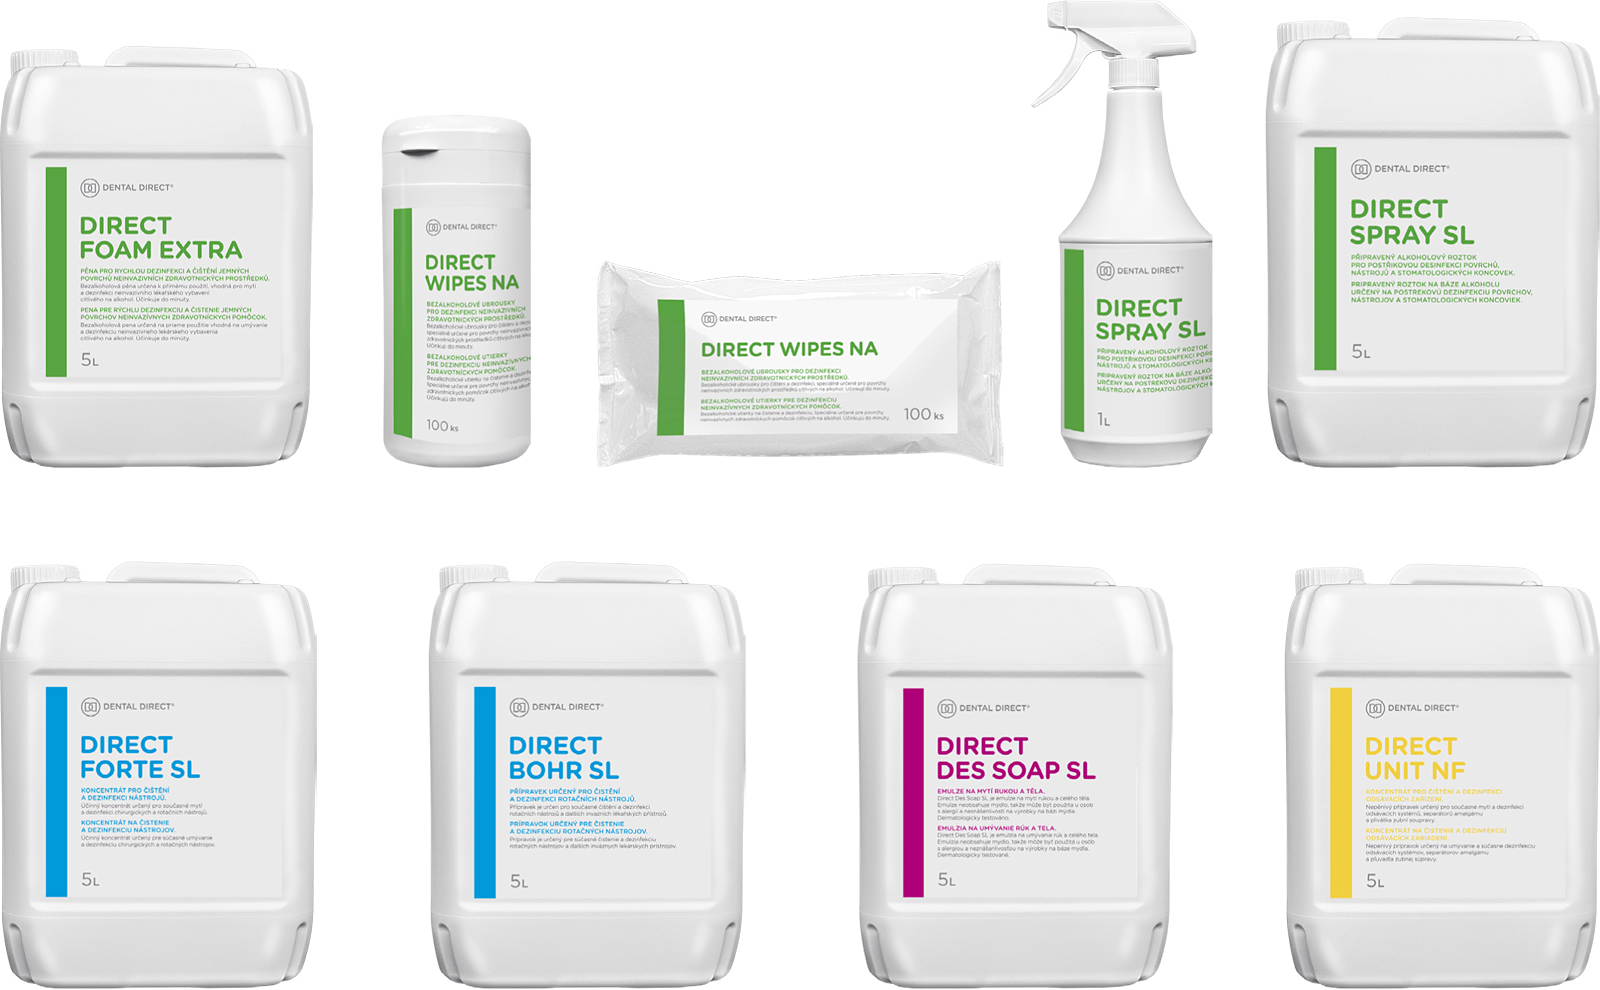 Dental Direct products